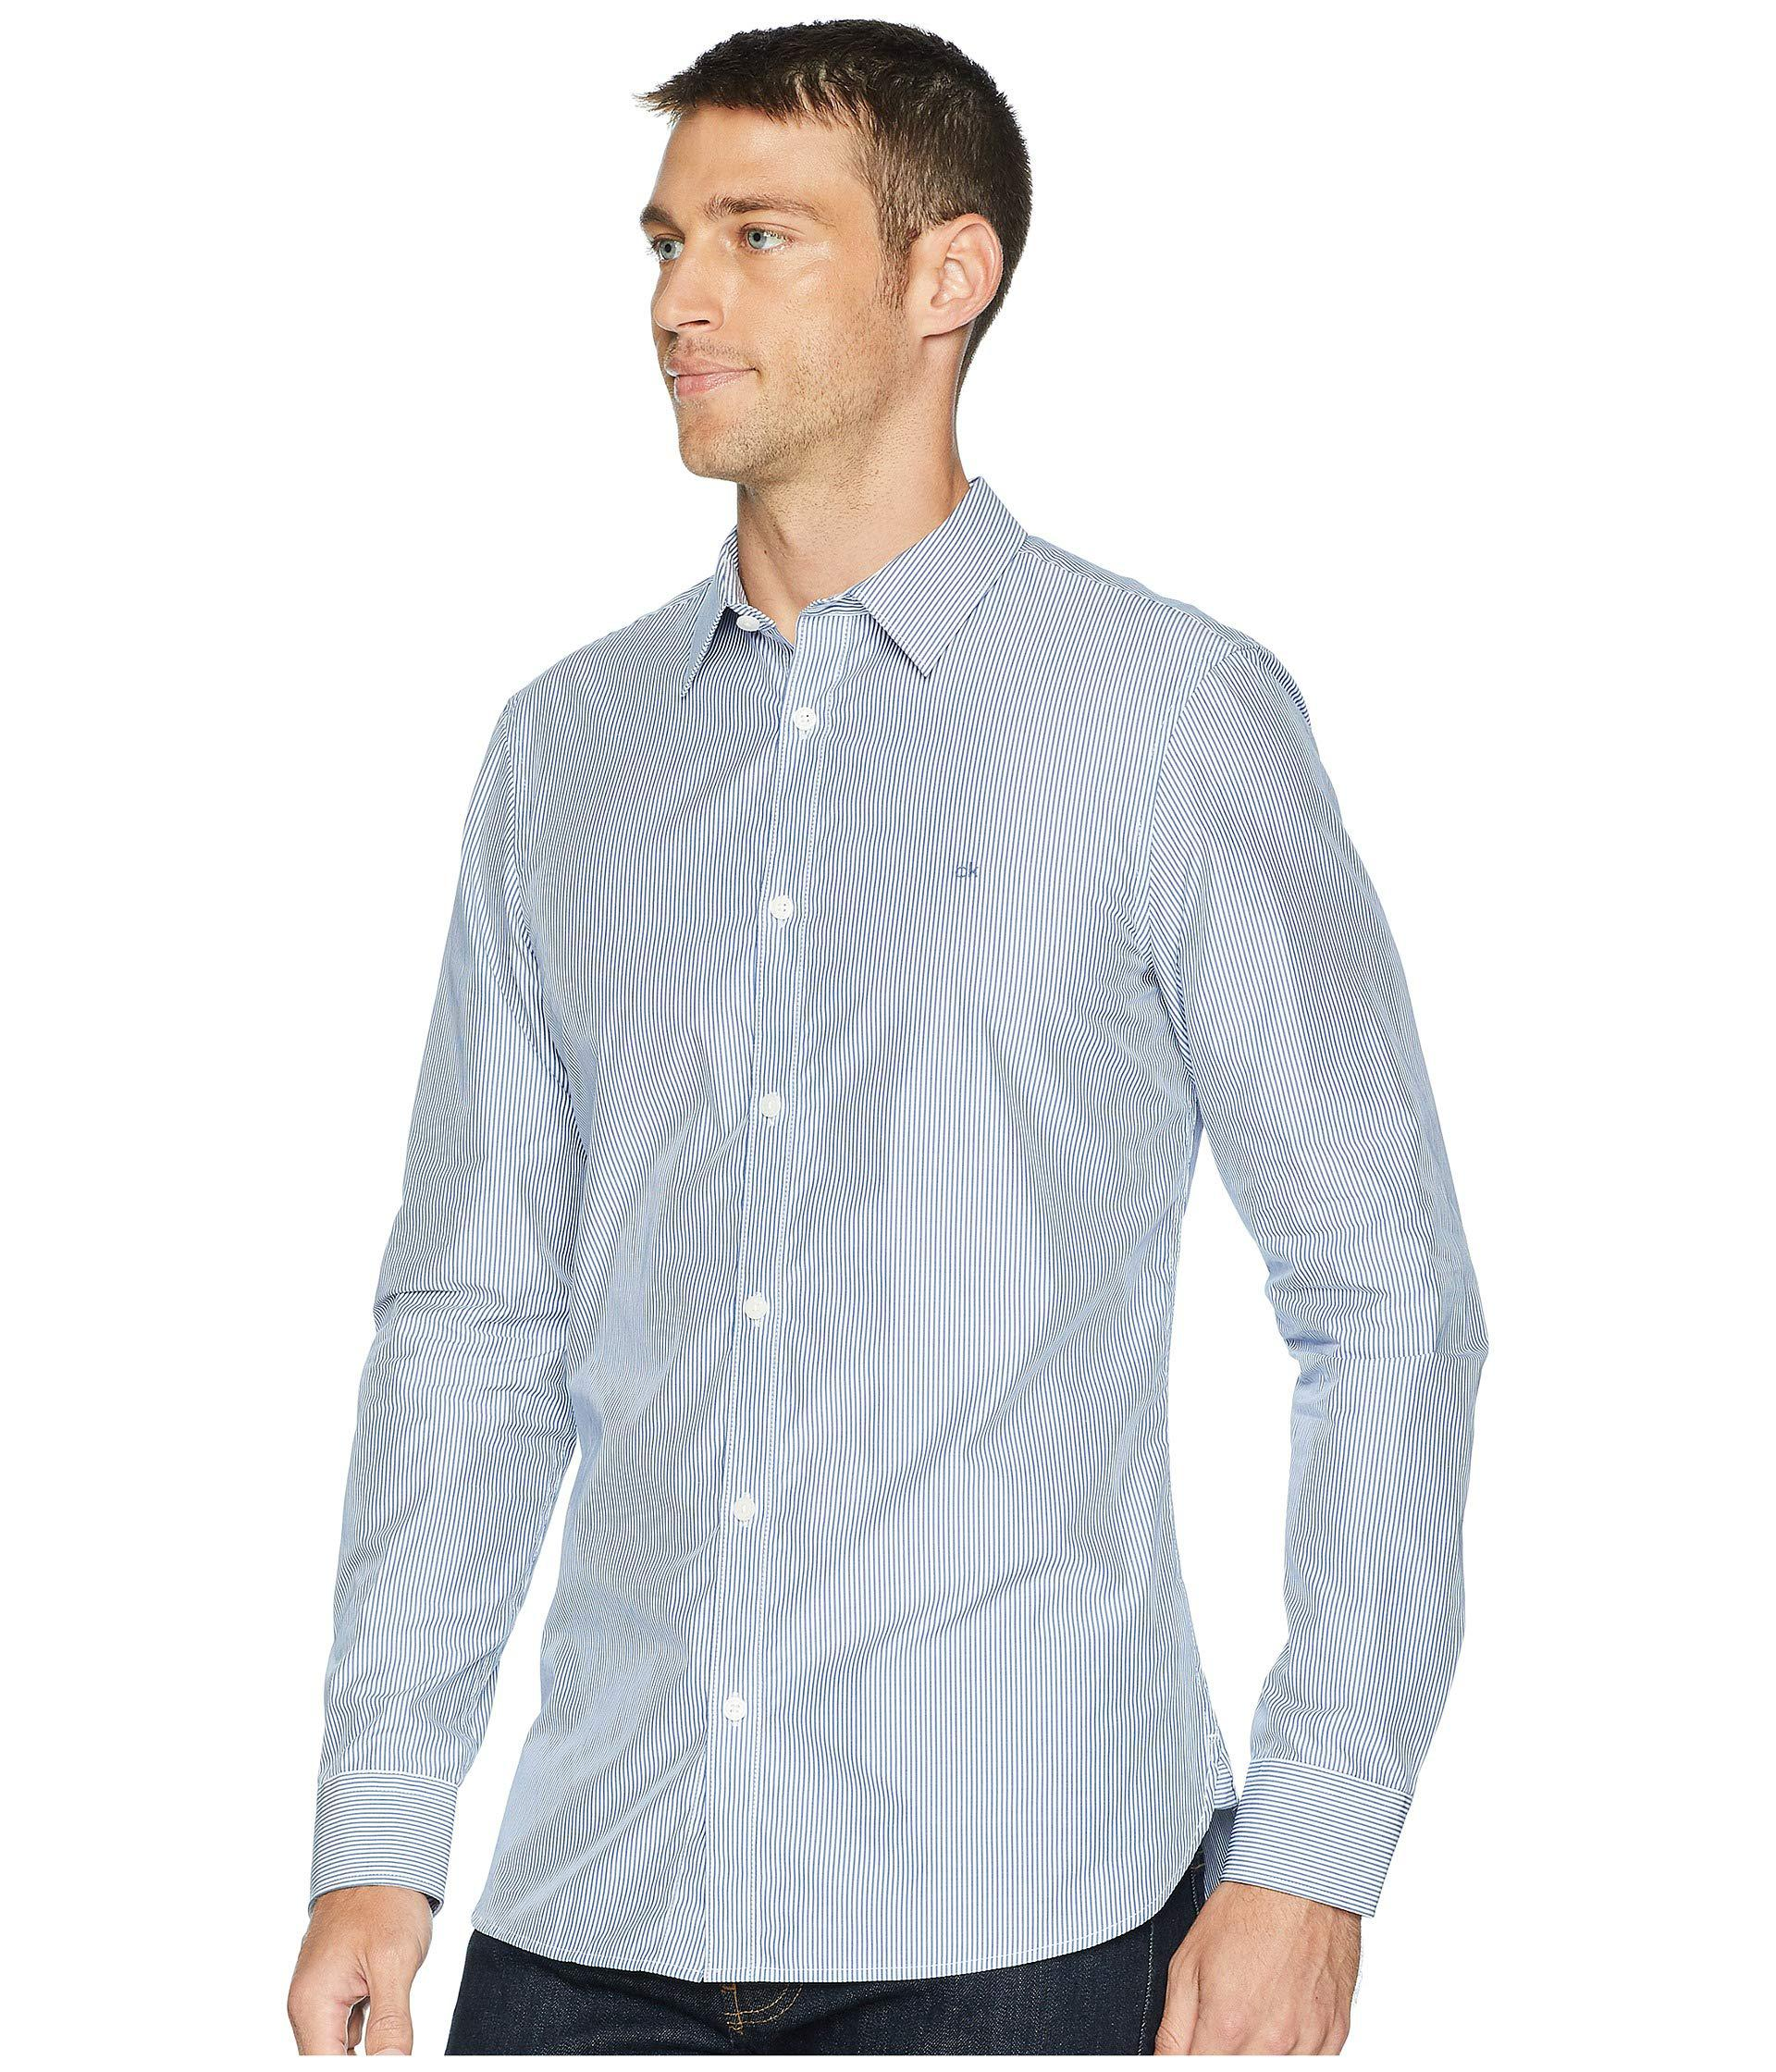 f45cb1a1ffc Lyst - Calvin Klein The Extra-fine Cotton Shirt (black) Men s Clothing in  Blue for Men